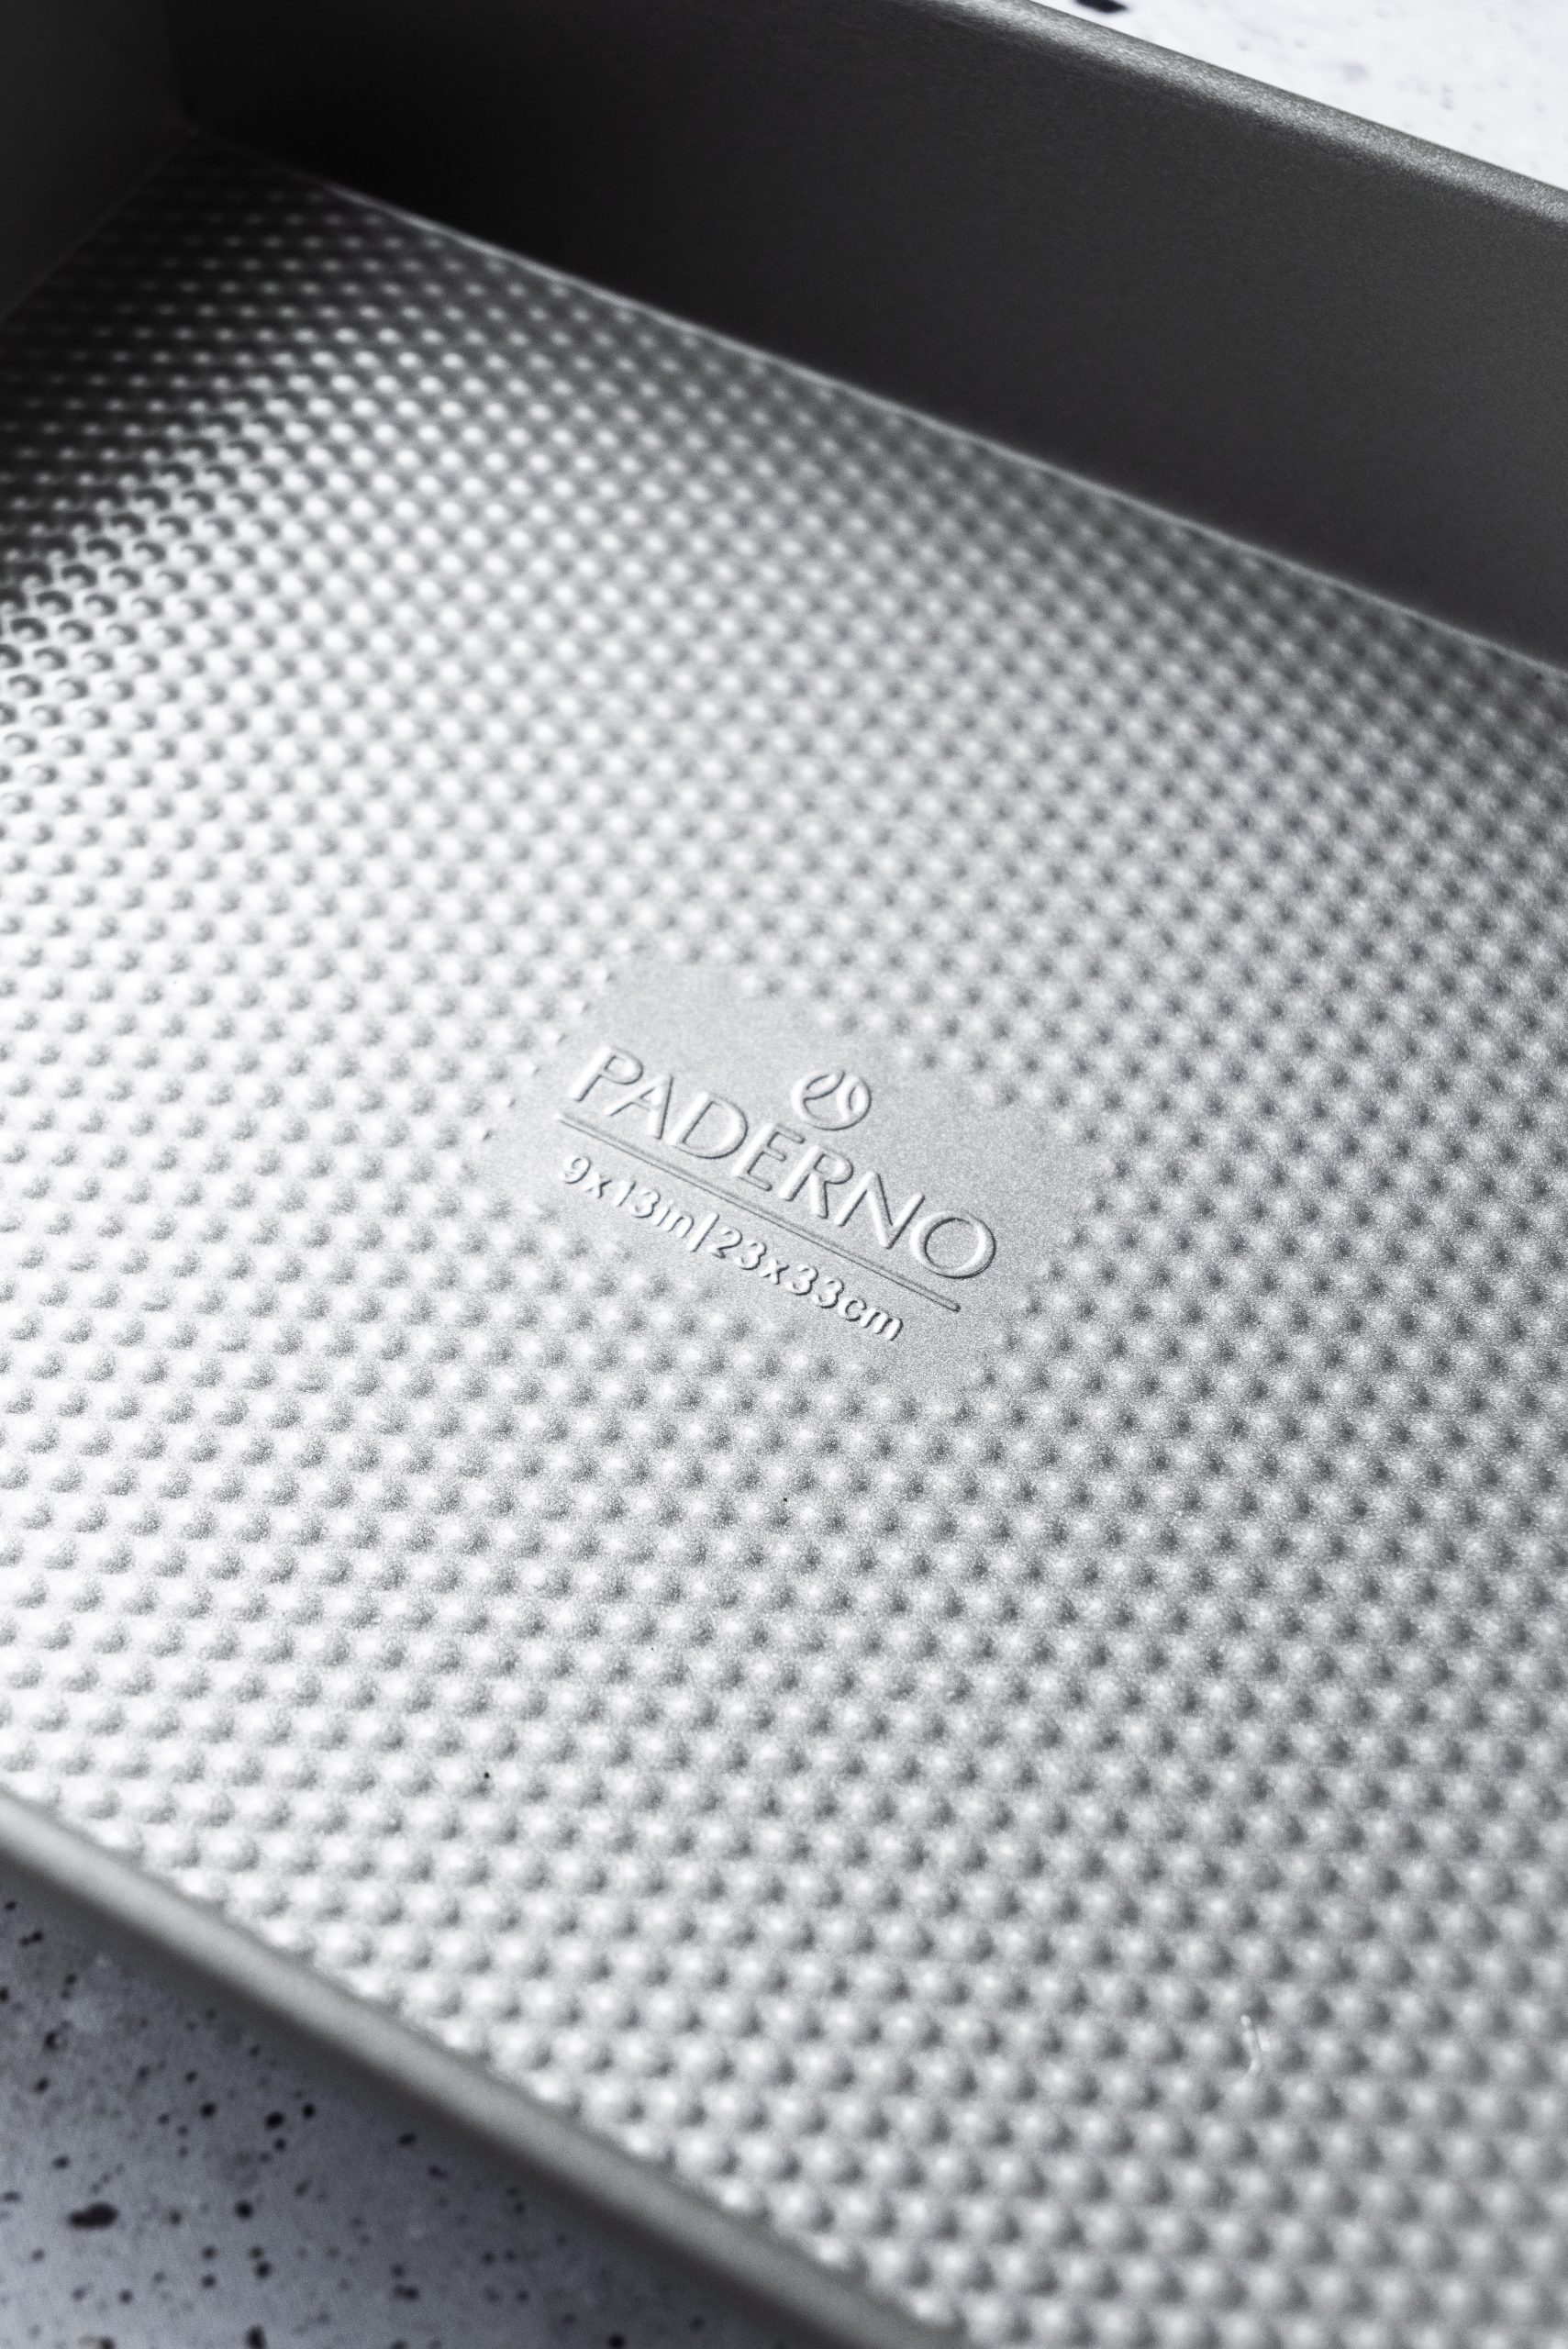 An over head image of an empty baking pan with the text PADERNO.